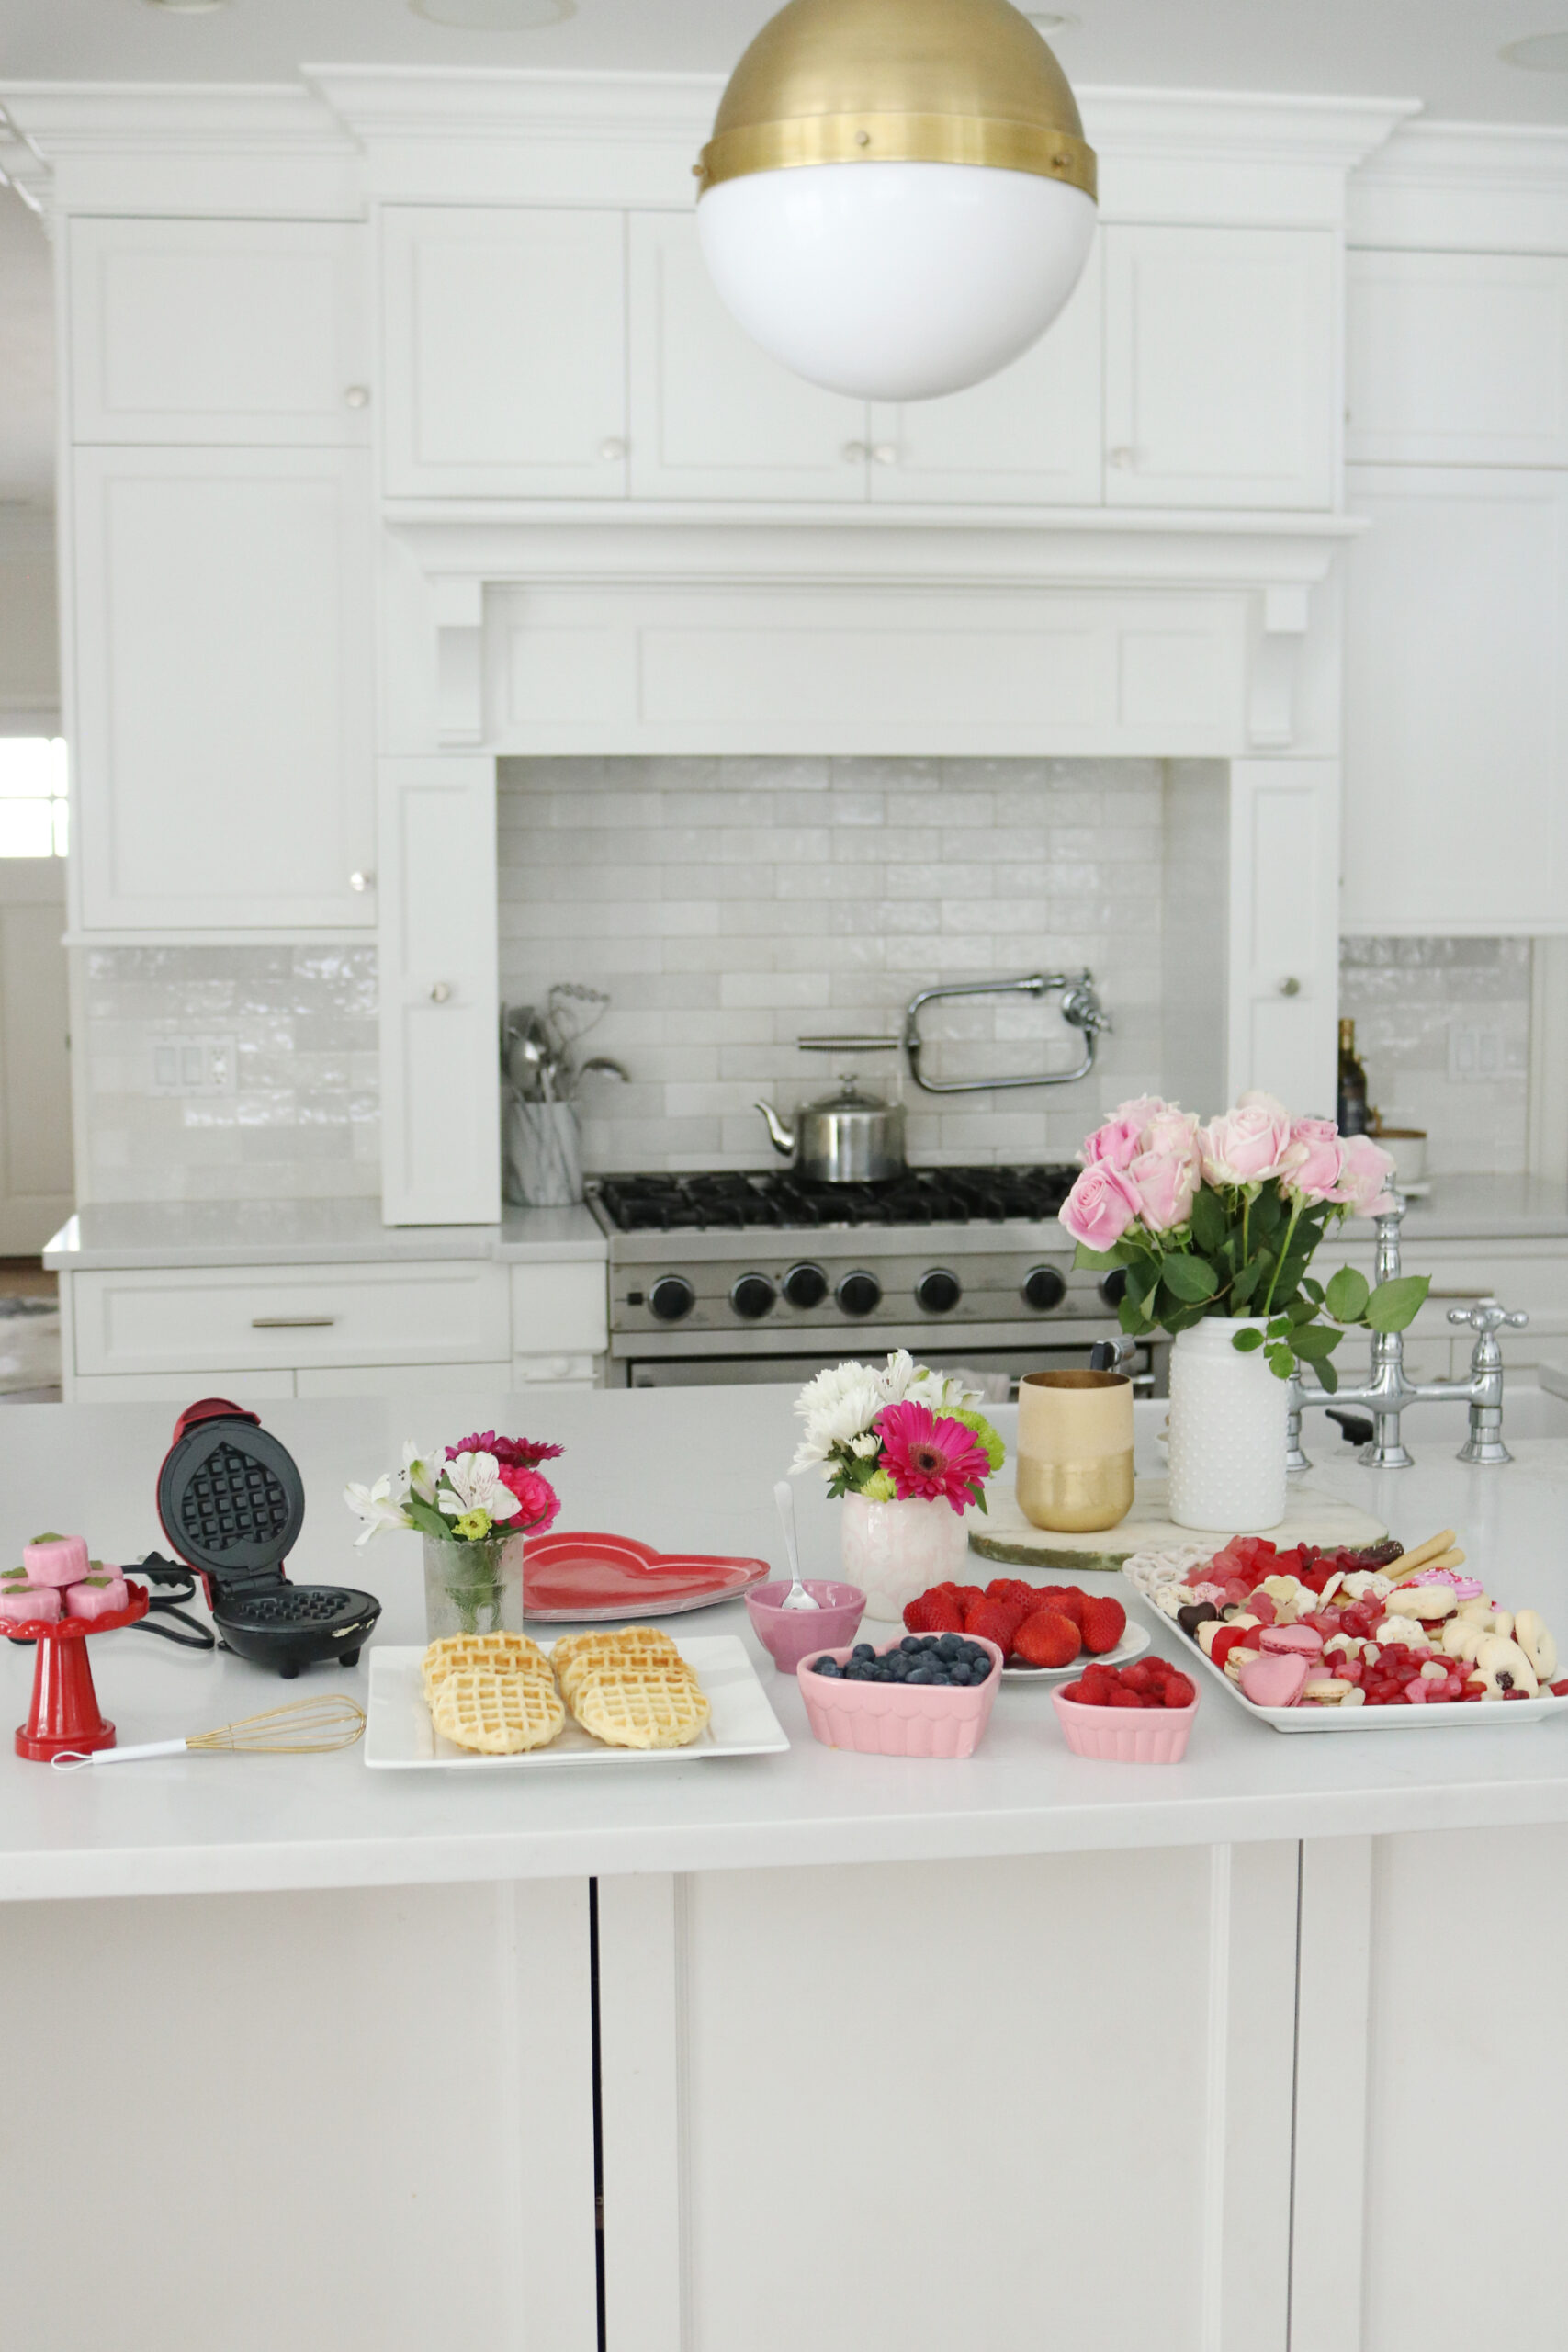 Bring Valentine's Day Home this year!  Put together a Valentine's waffle bar and breakfast of hearts and a charcuterie board with heart shaped chocolate, cinnamon lips and macrons!  So many fun Valentine's Day ideas to share with your family    Darling Darleen Top Lifestyle Blogger #ctblogger #darlingdarleen #valentinesday